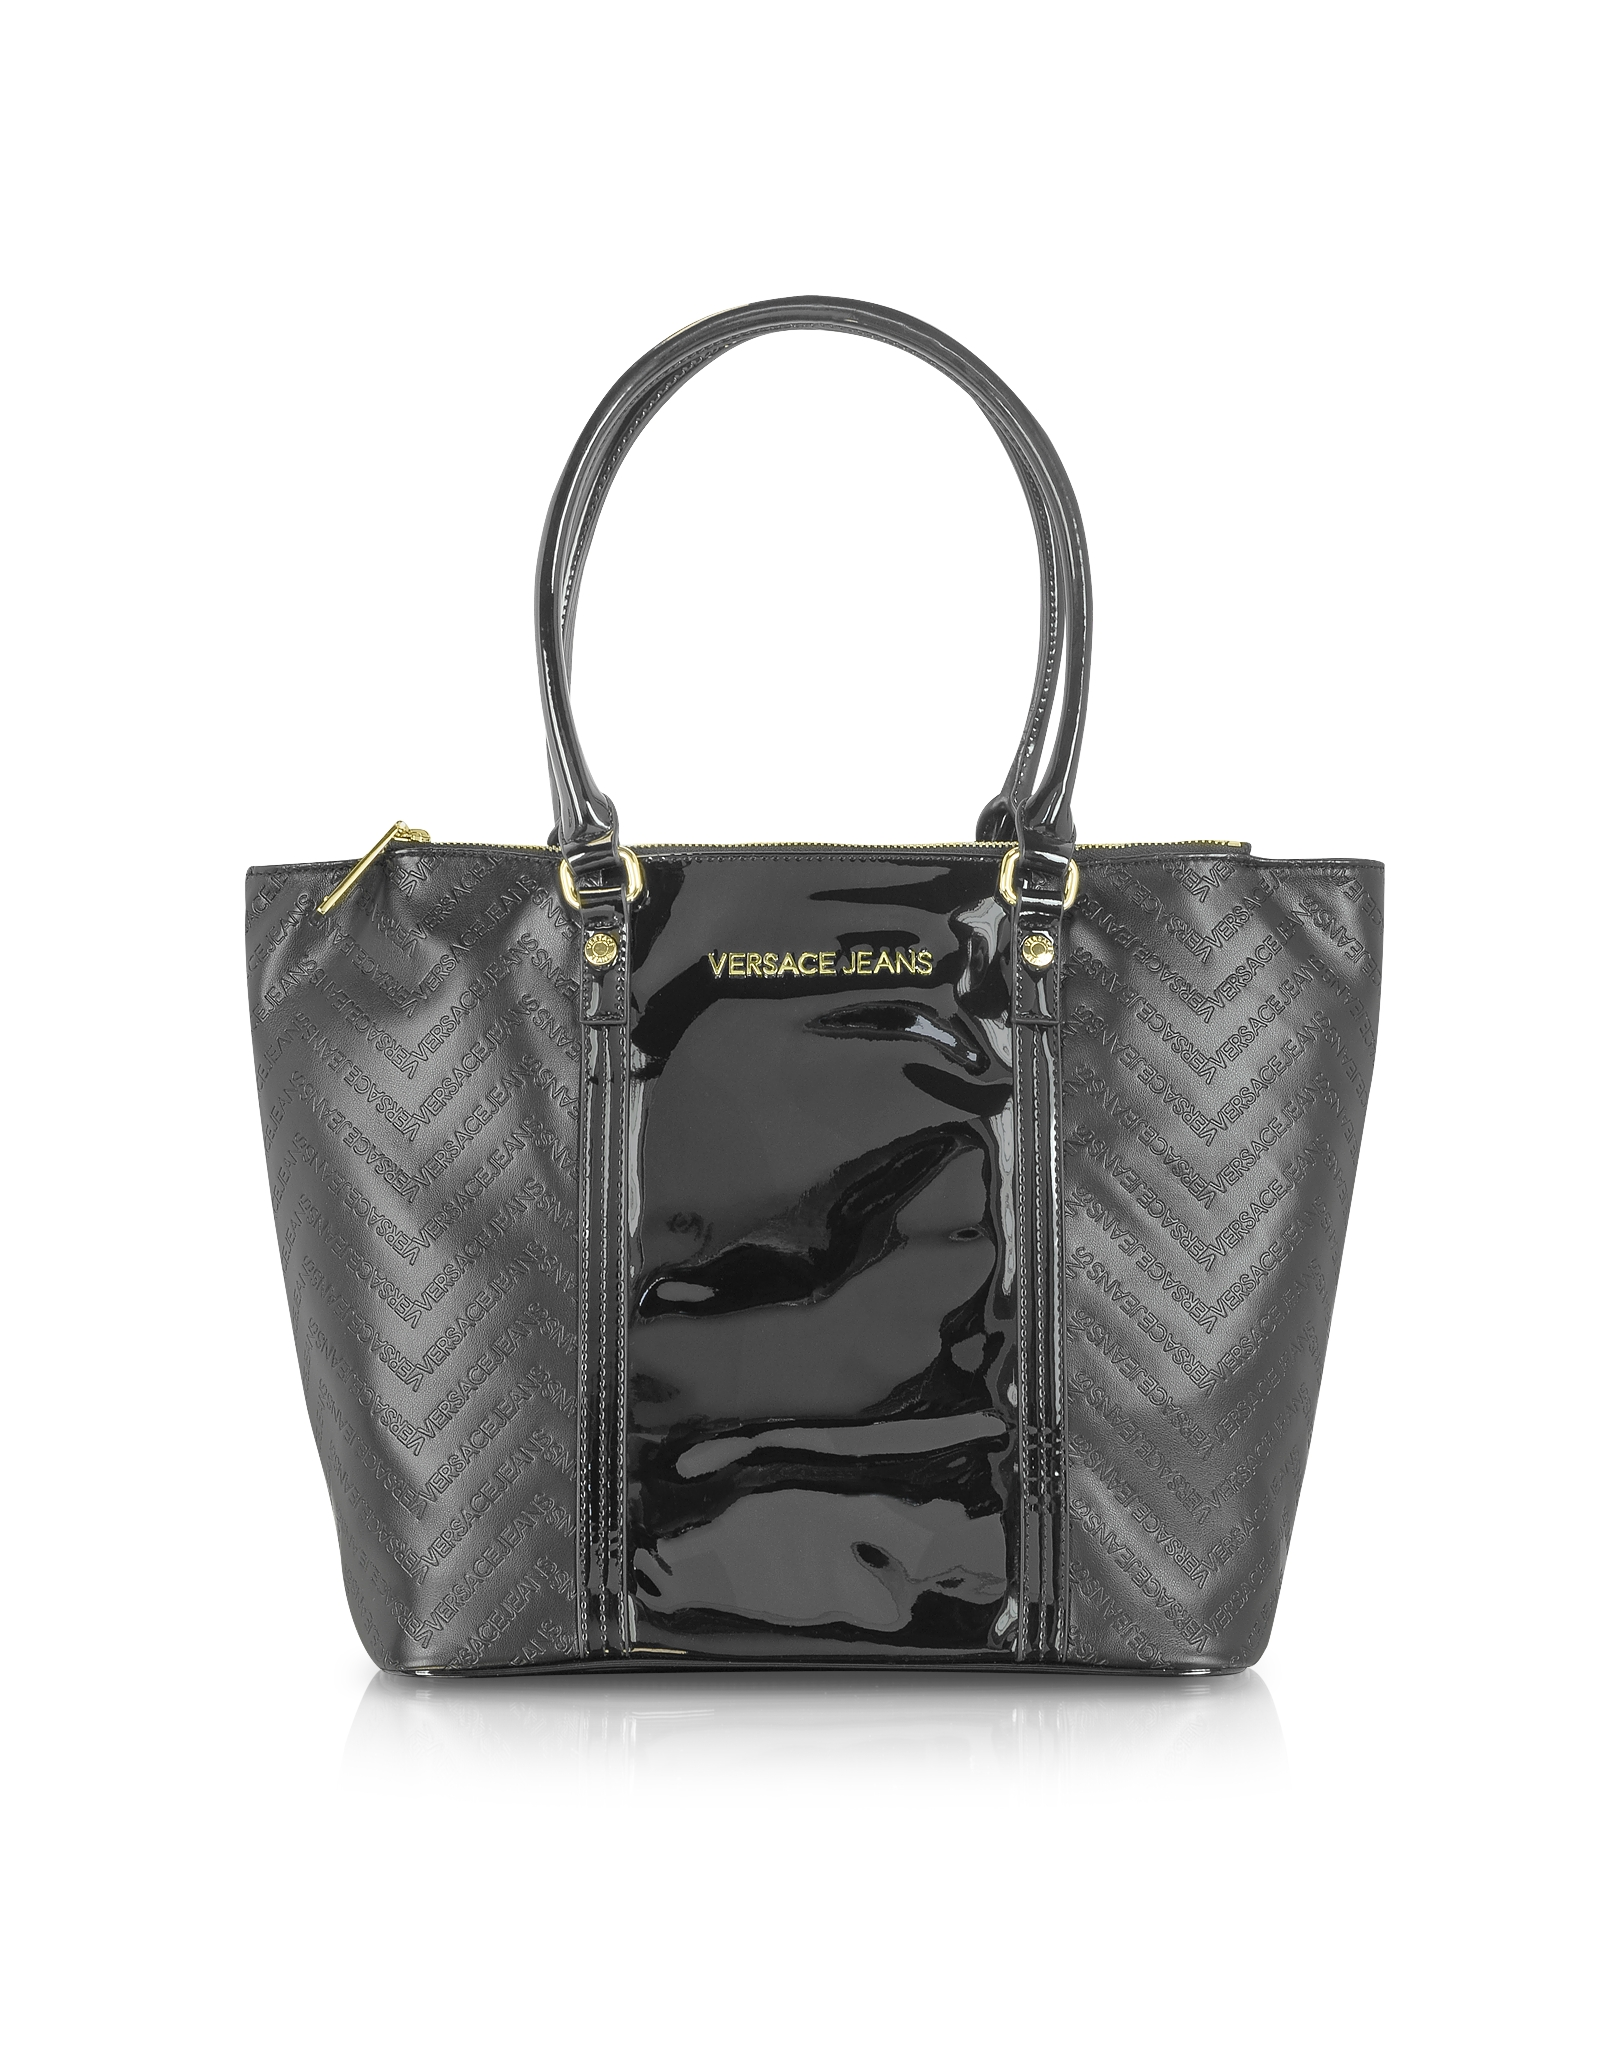 Versace Jeans Black Signature Eco Patent Leather Tote in Black - Lyst 2d974f94a41d8